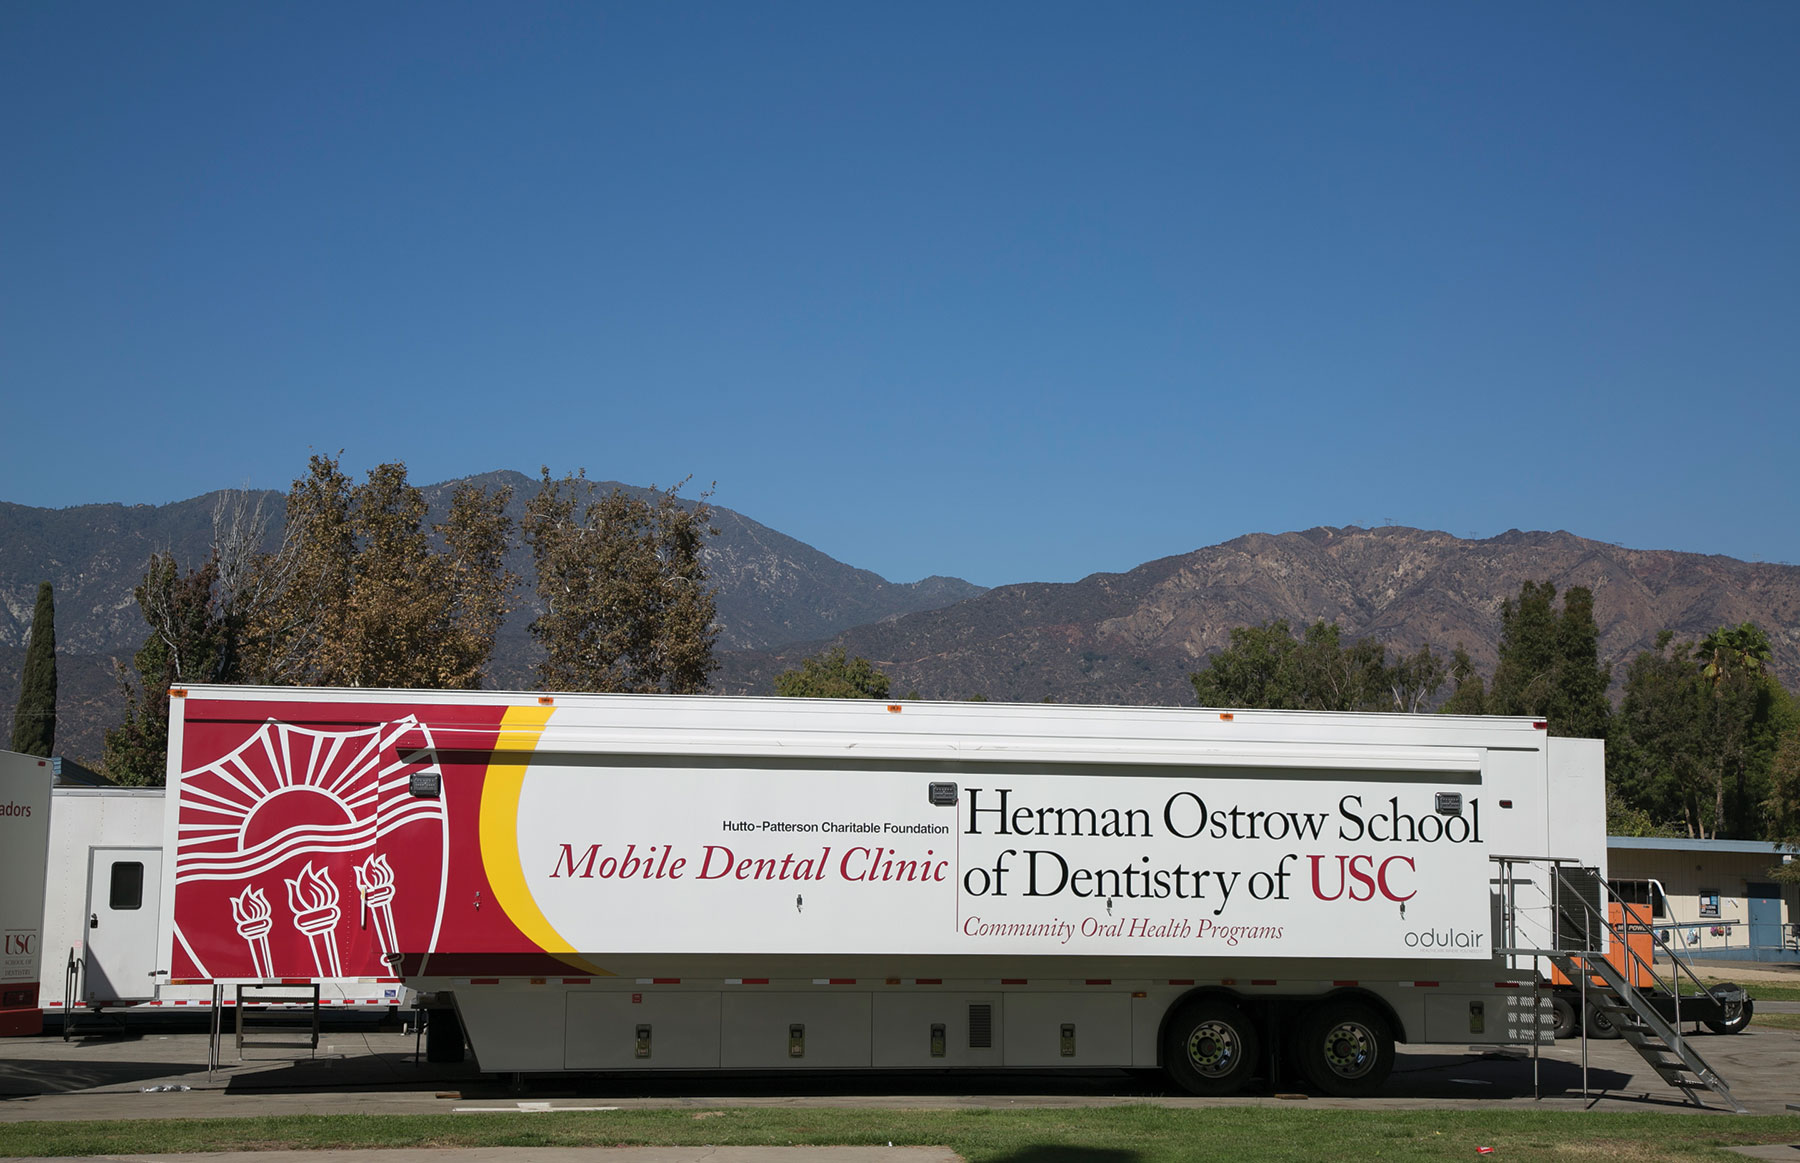 Usc Puts Dental Care Within Reach For Underserved Families